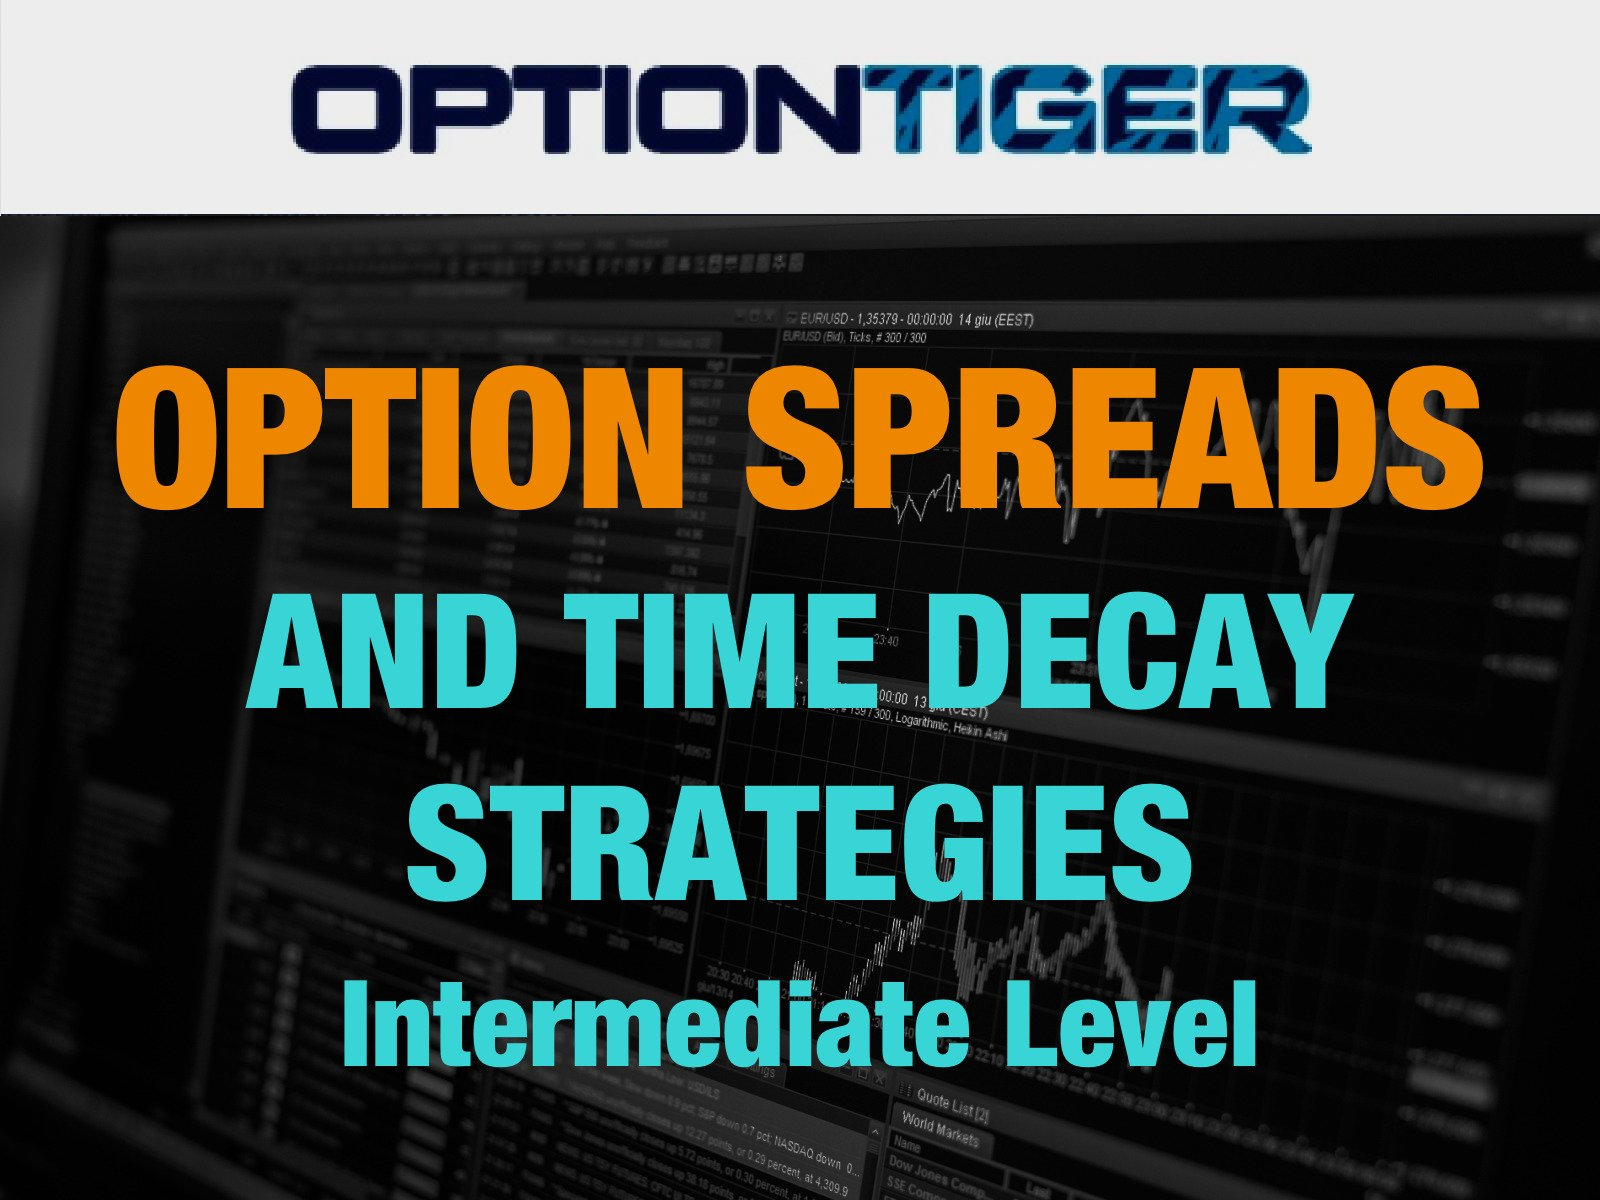 Option Spreads and Time Decay Strategies - Season 1